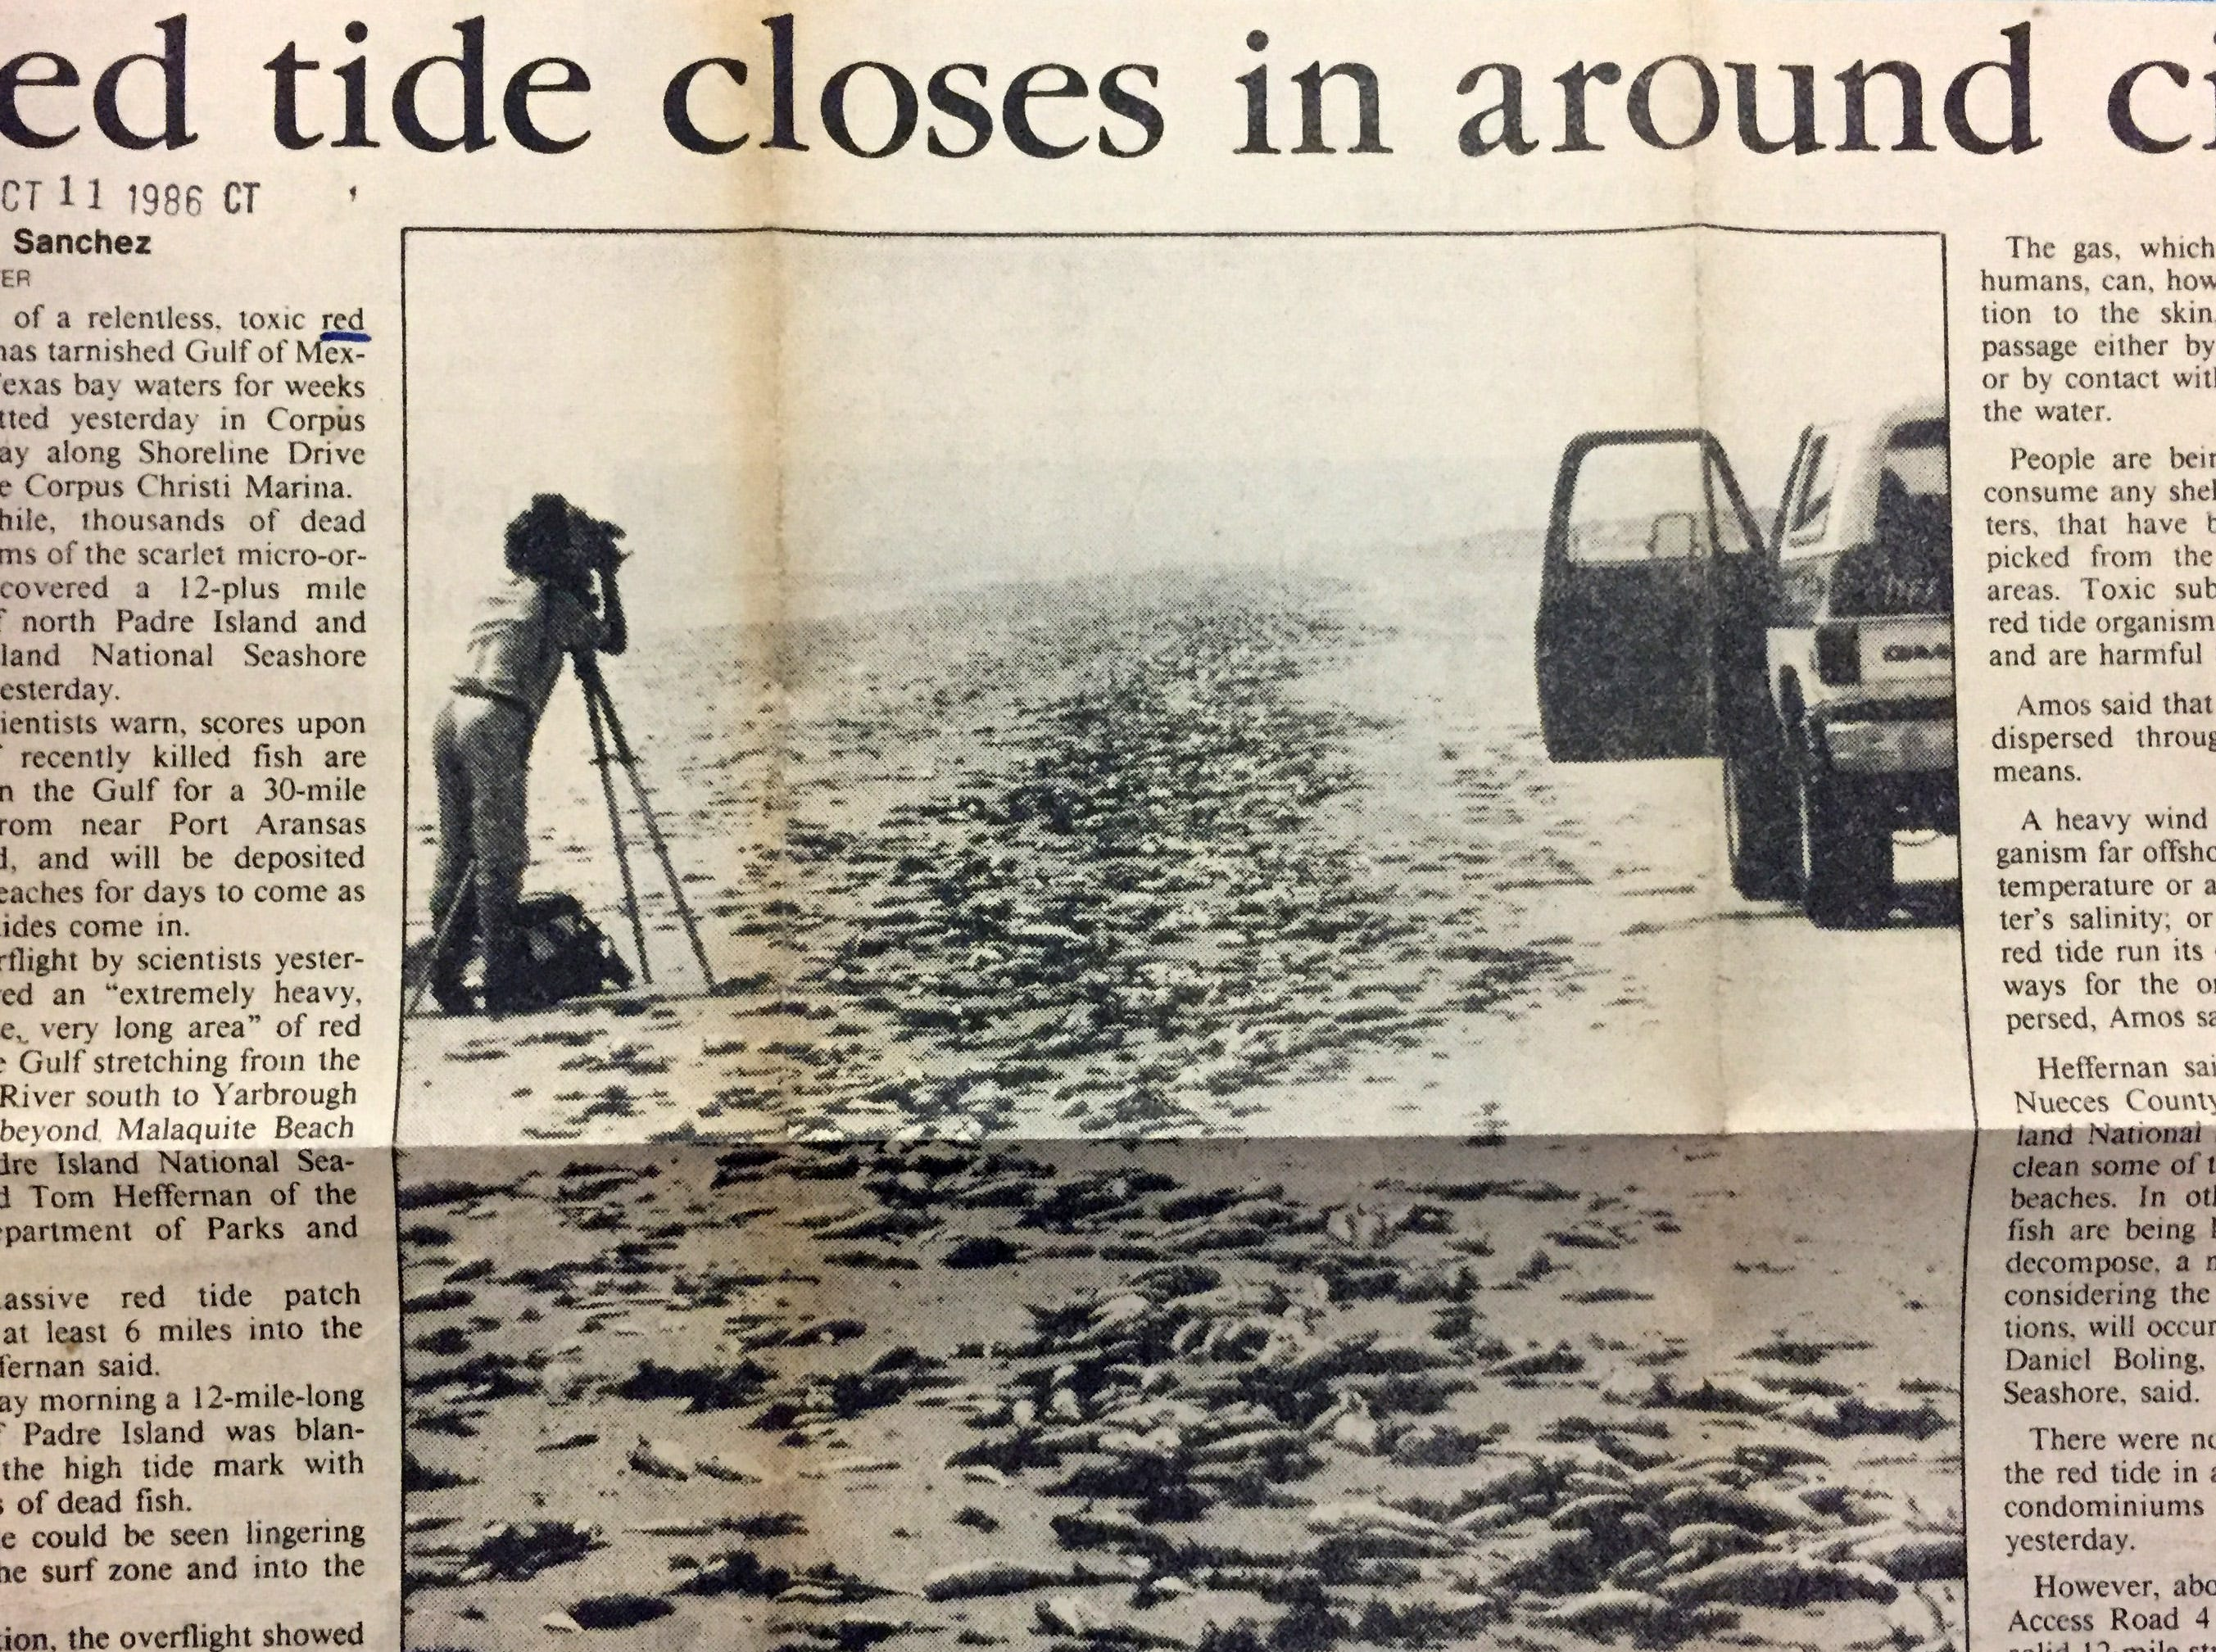 Historic newspaper reports helped researchers determine a correlation between red tide outbreaks and respiratory illness.